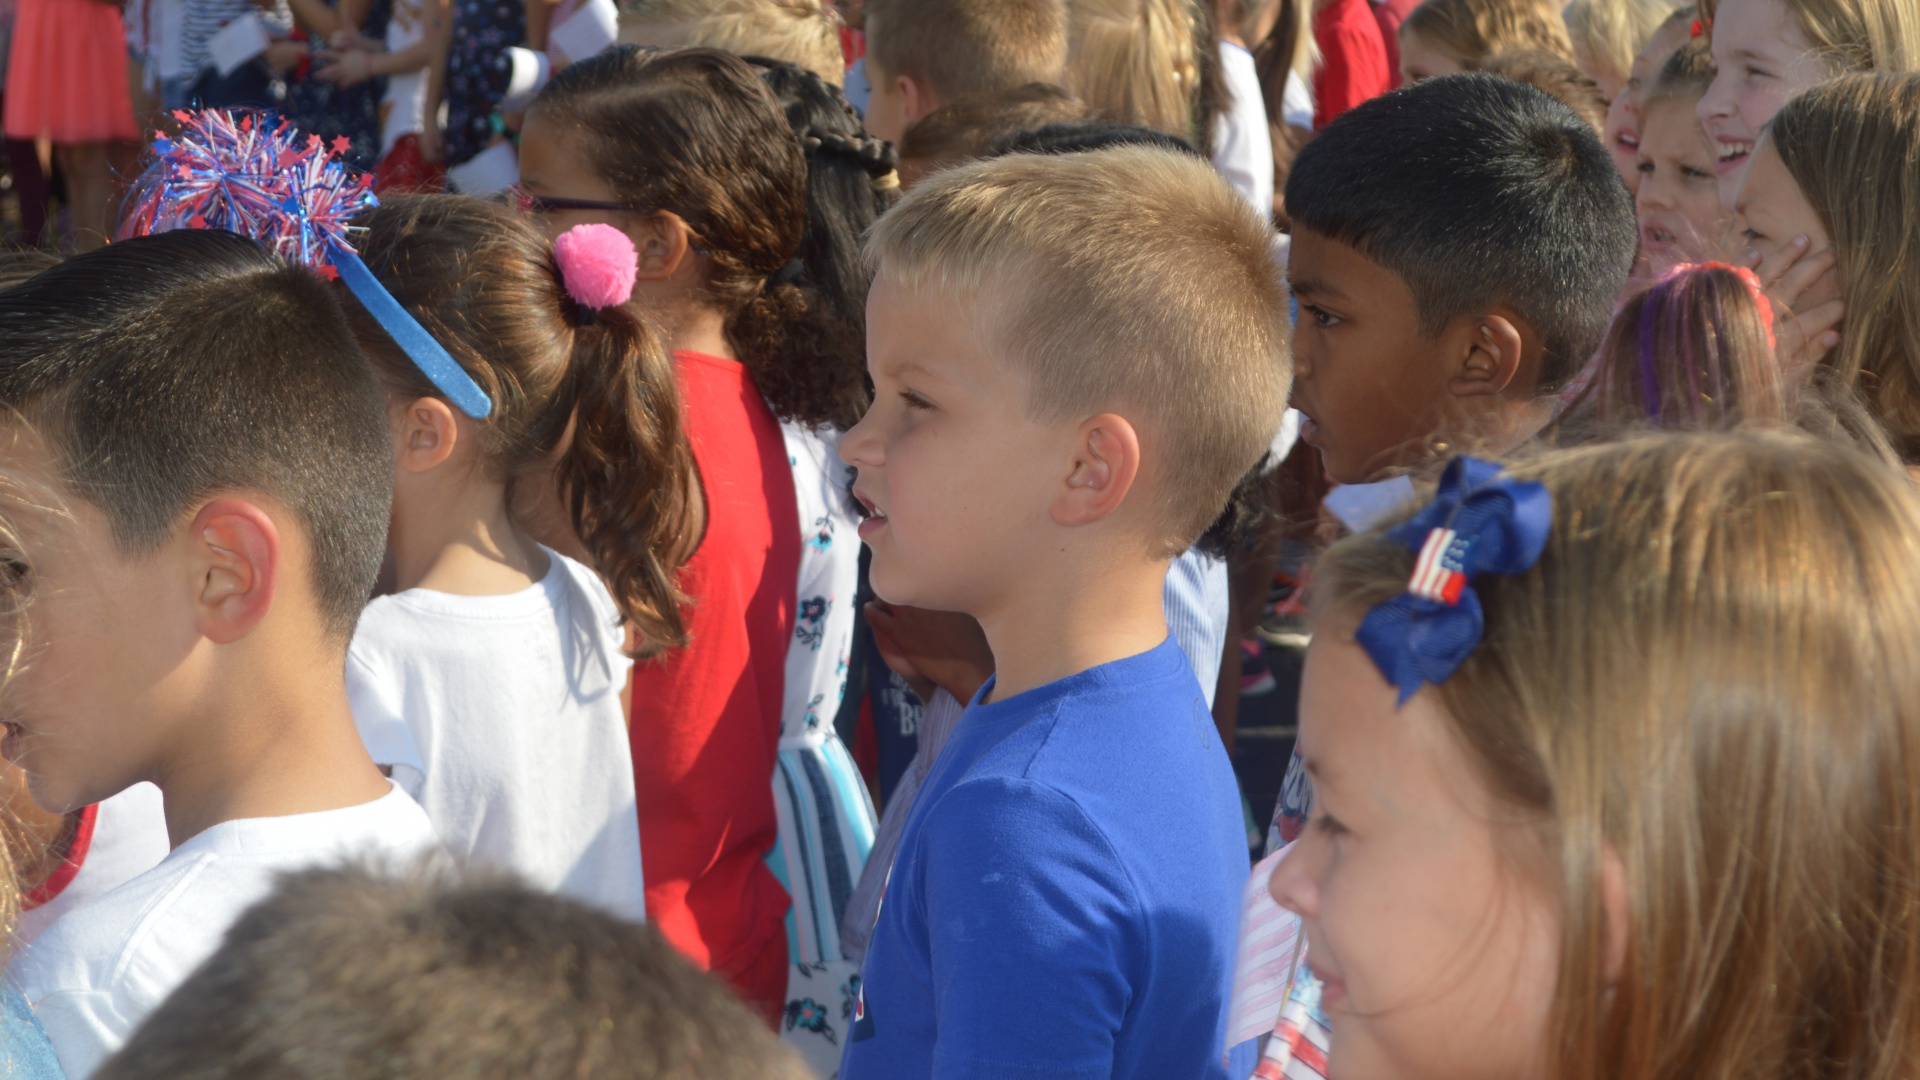 Singing the Star Spangled Banner for Patriot's Day